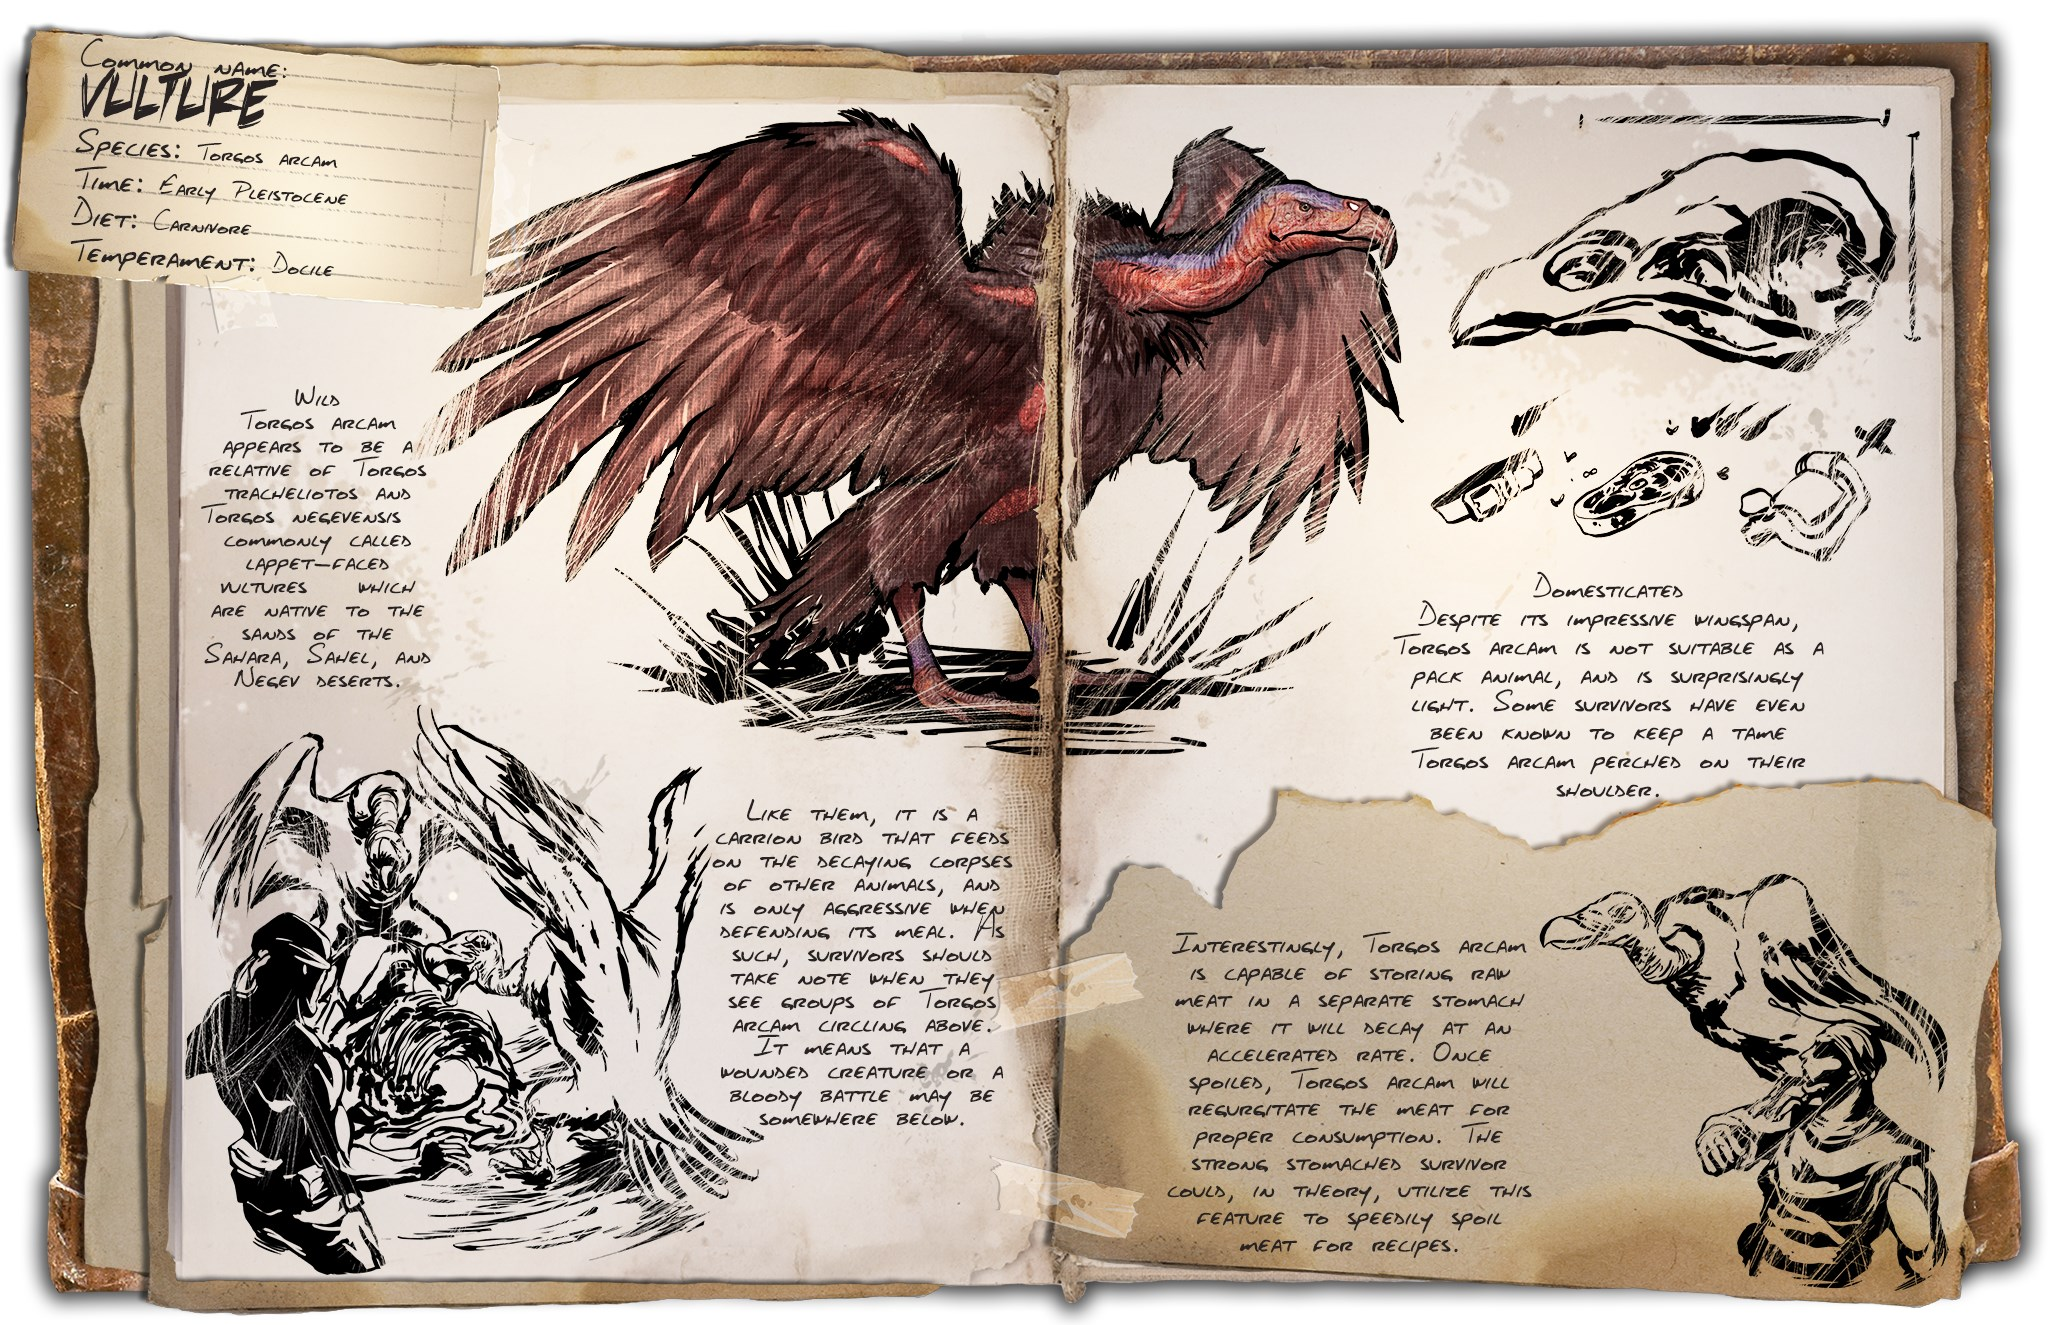 ARK: Scorched Earth Vulture